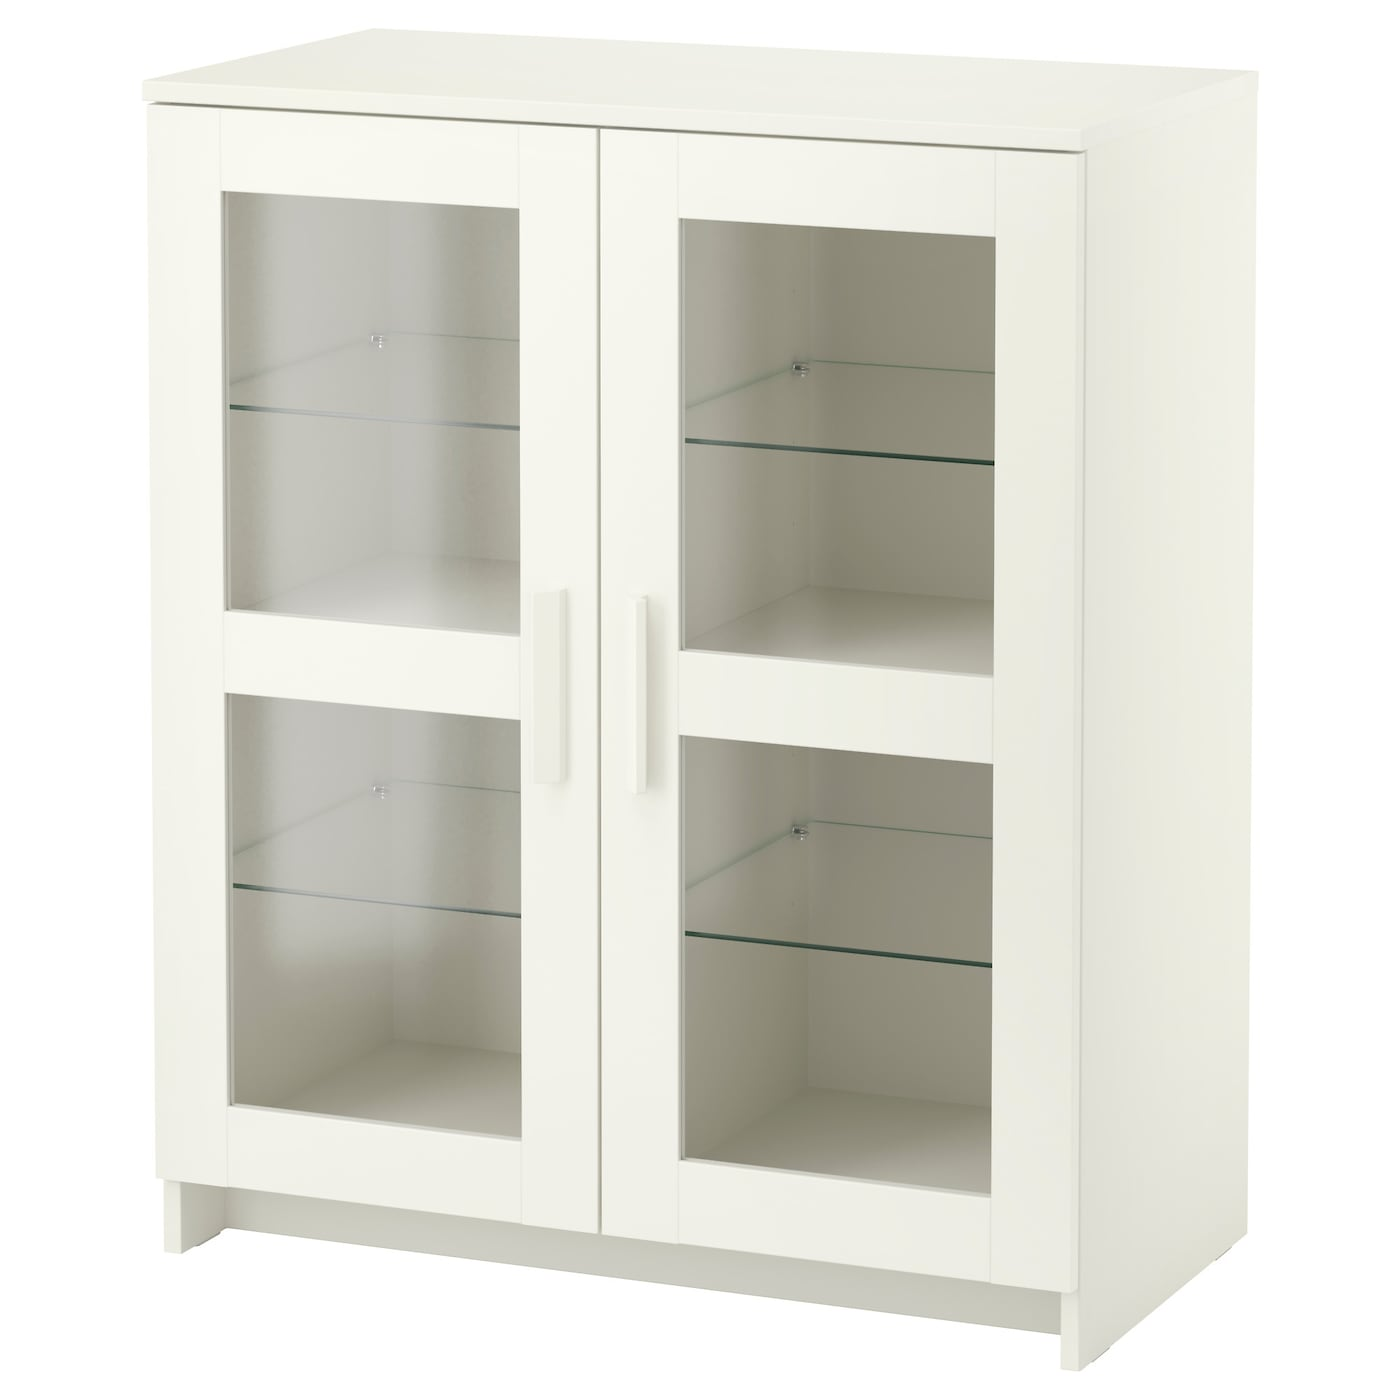 Brimnes cabinet with doors glass white 78x95 cm ikea - Ikea armoire 3 portes ...